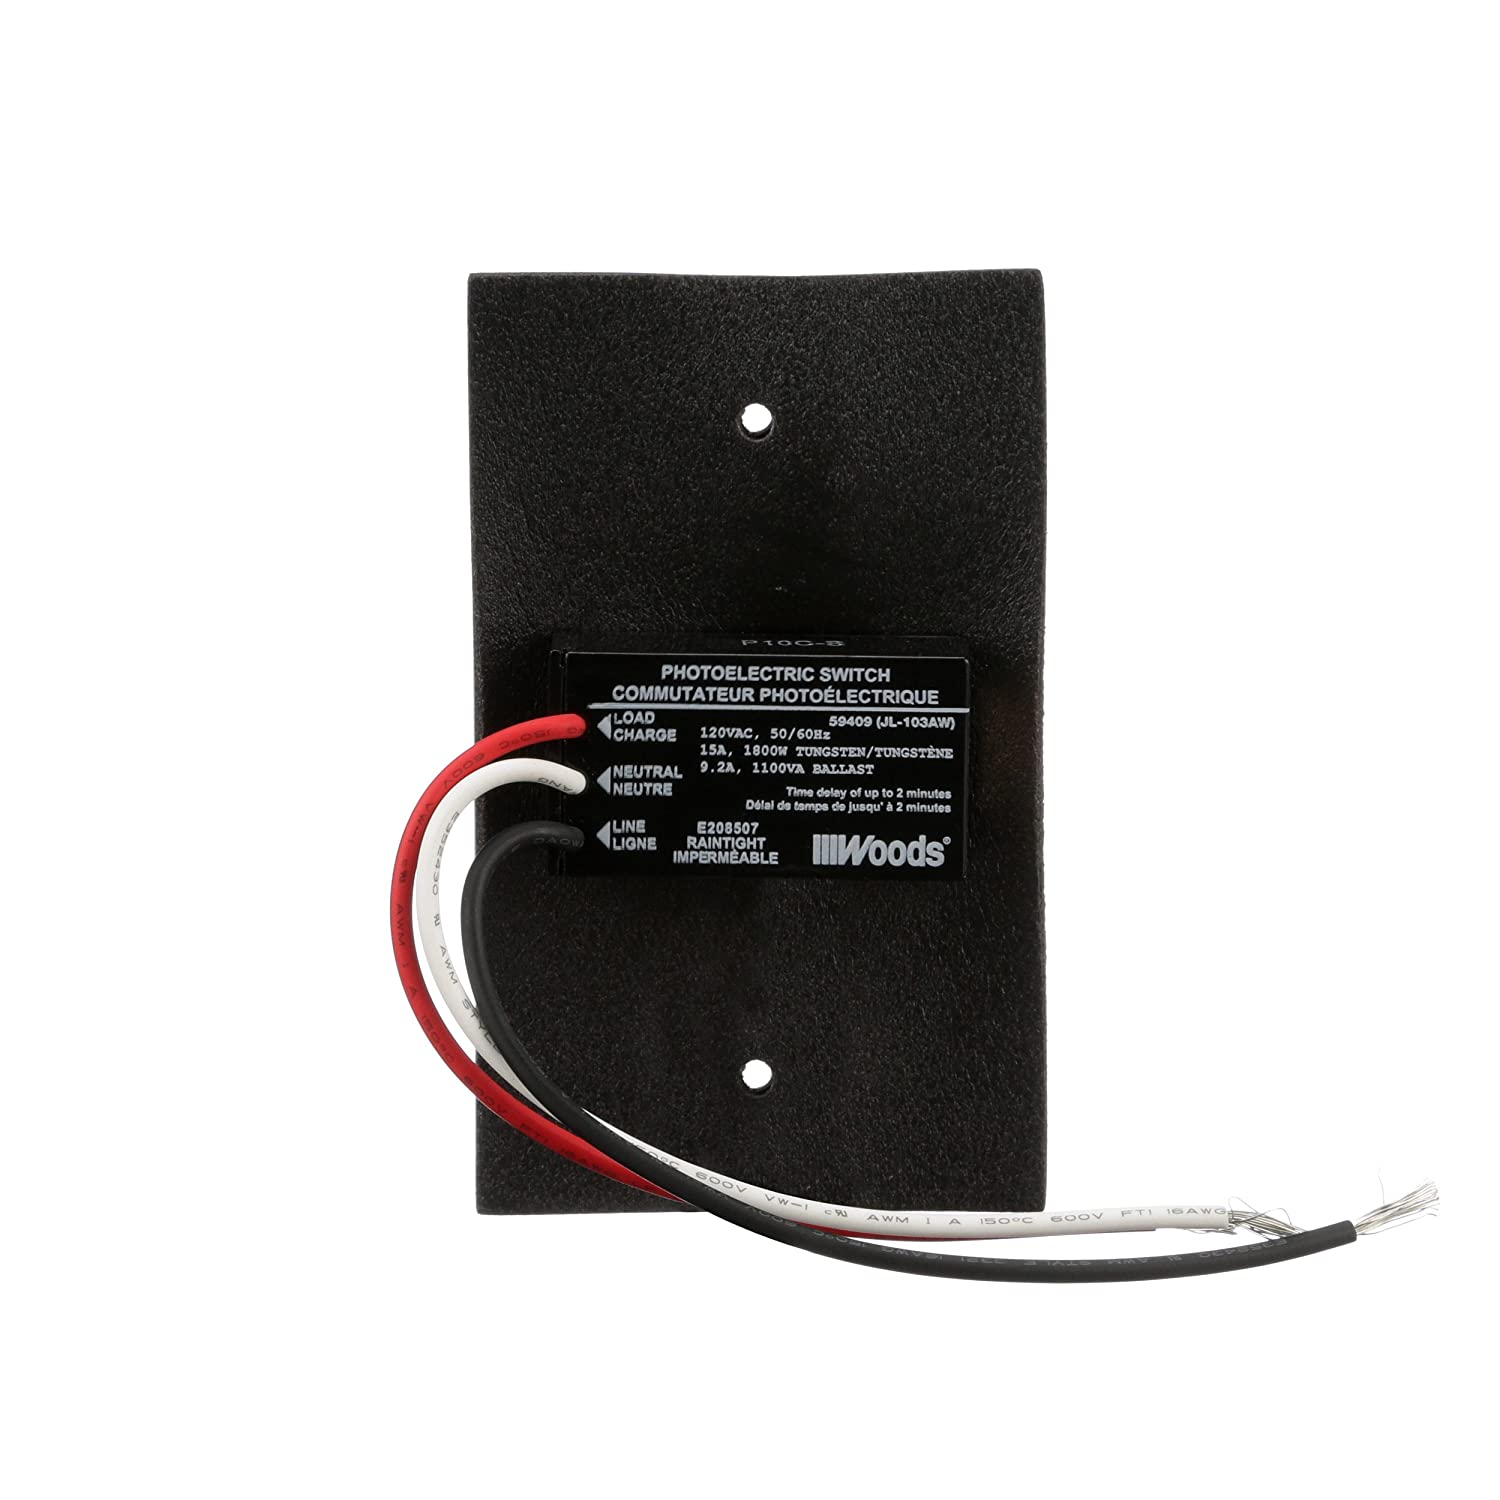 81JbZvP44LL._SL1500_ photocell for 277v wiring diagram dolgular com intermatic k4121c wiring diagram at creativeand.co